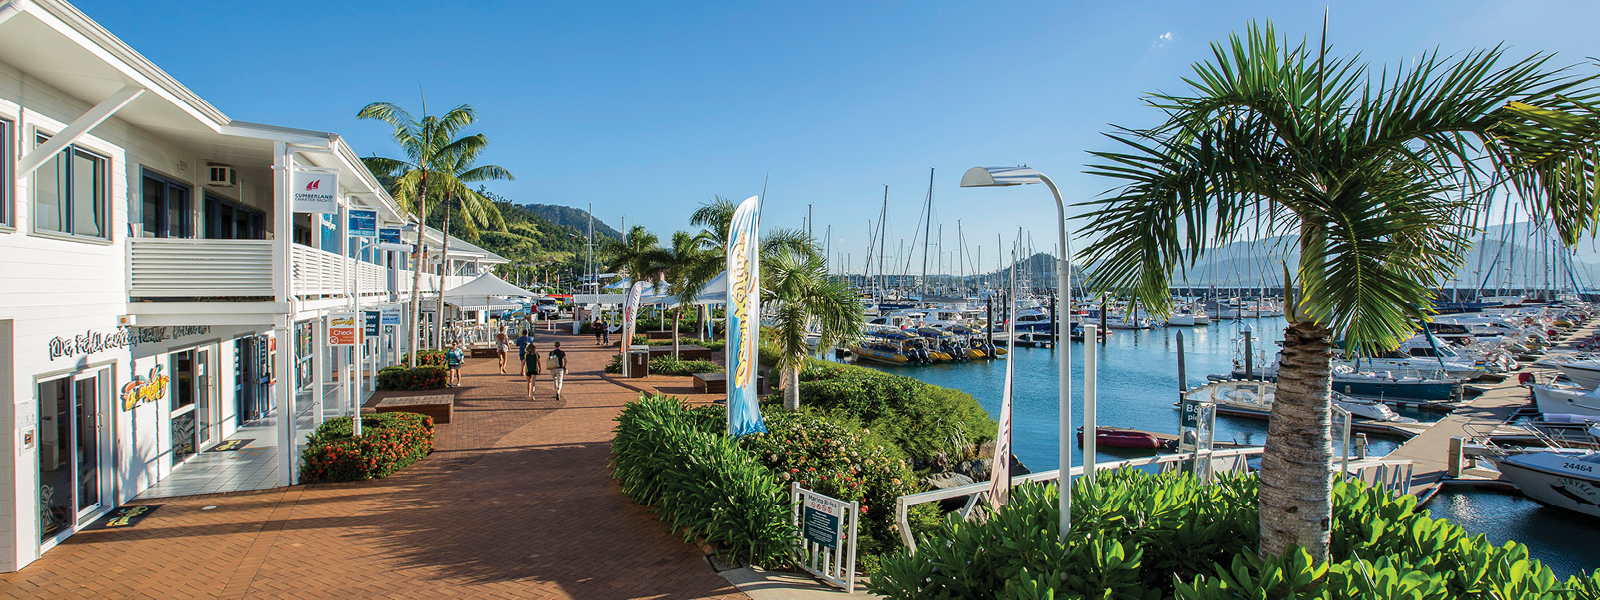 Relax in our vibrant marina village